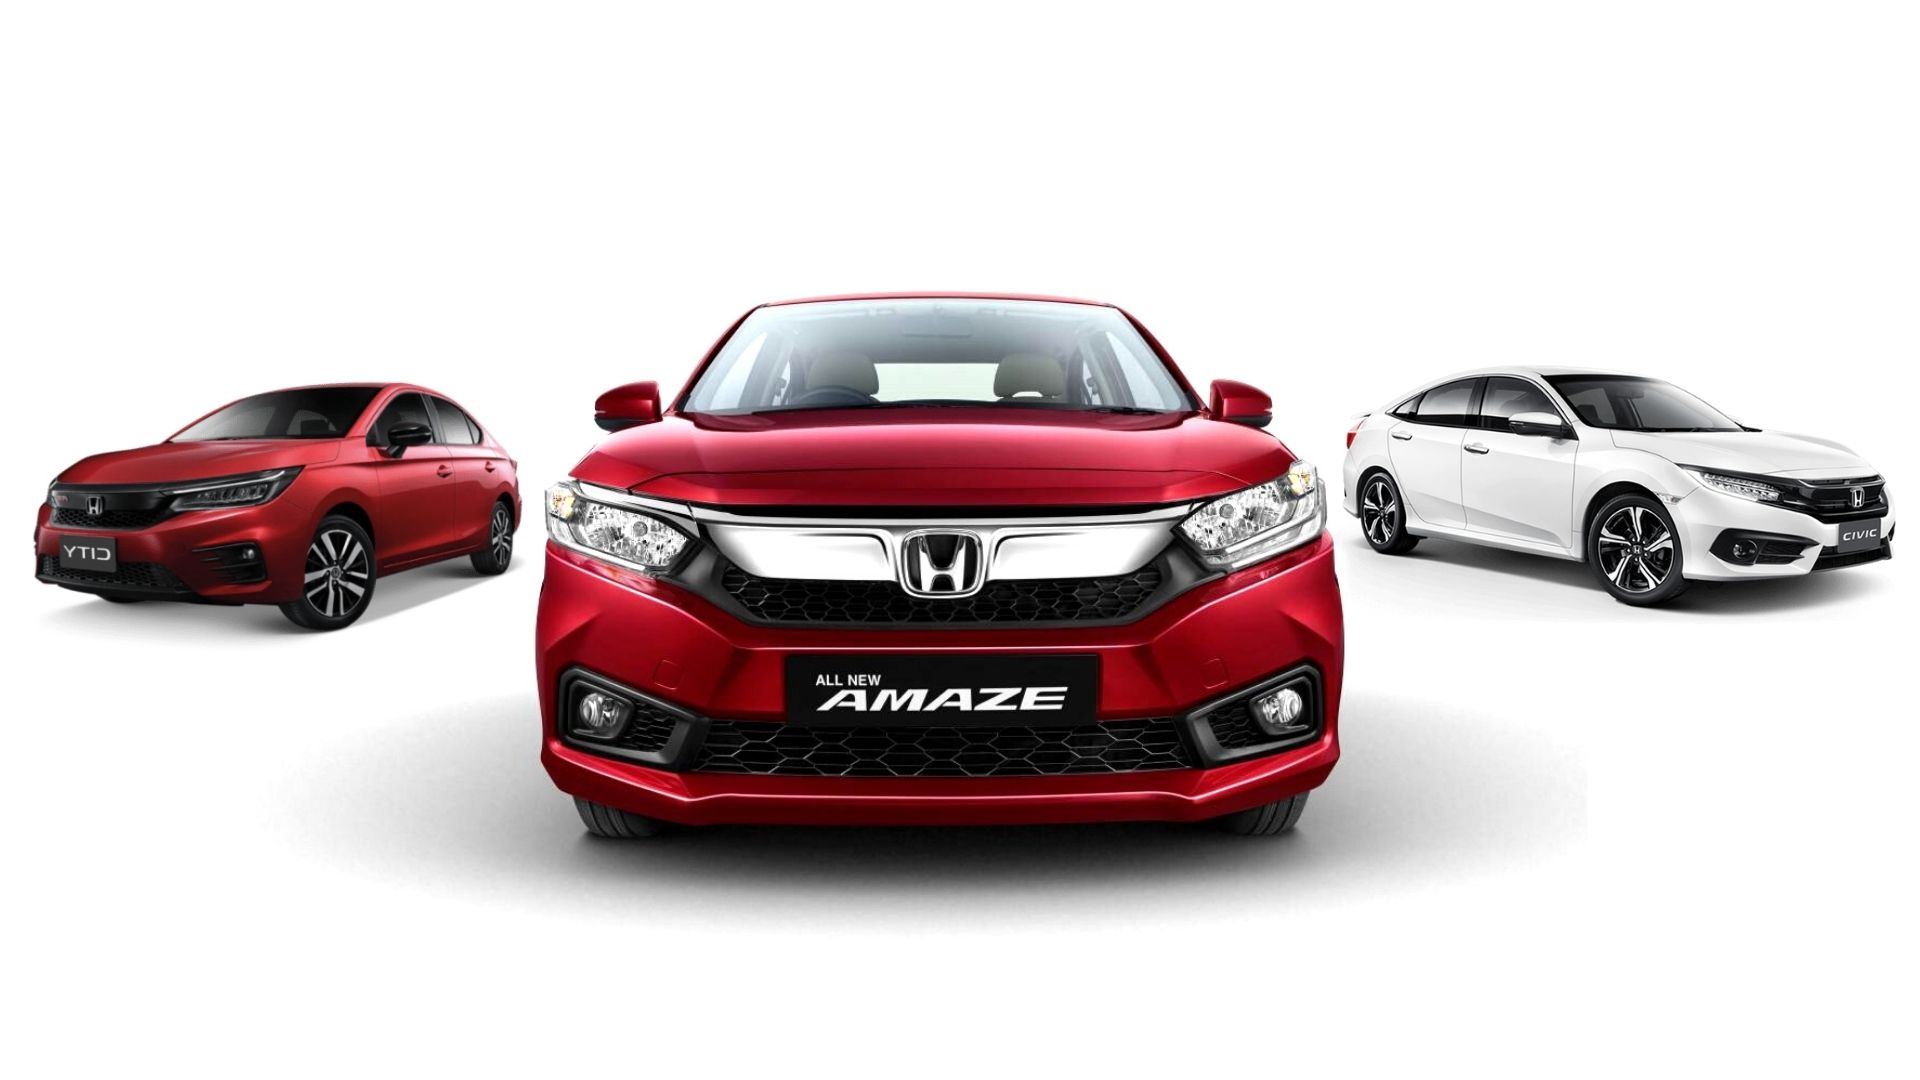 Honda Car Sales Up By 55% In November 2020 - Thanks To New City, Amaze, WR-V